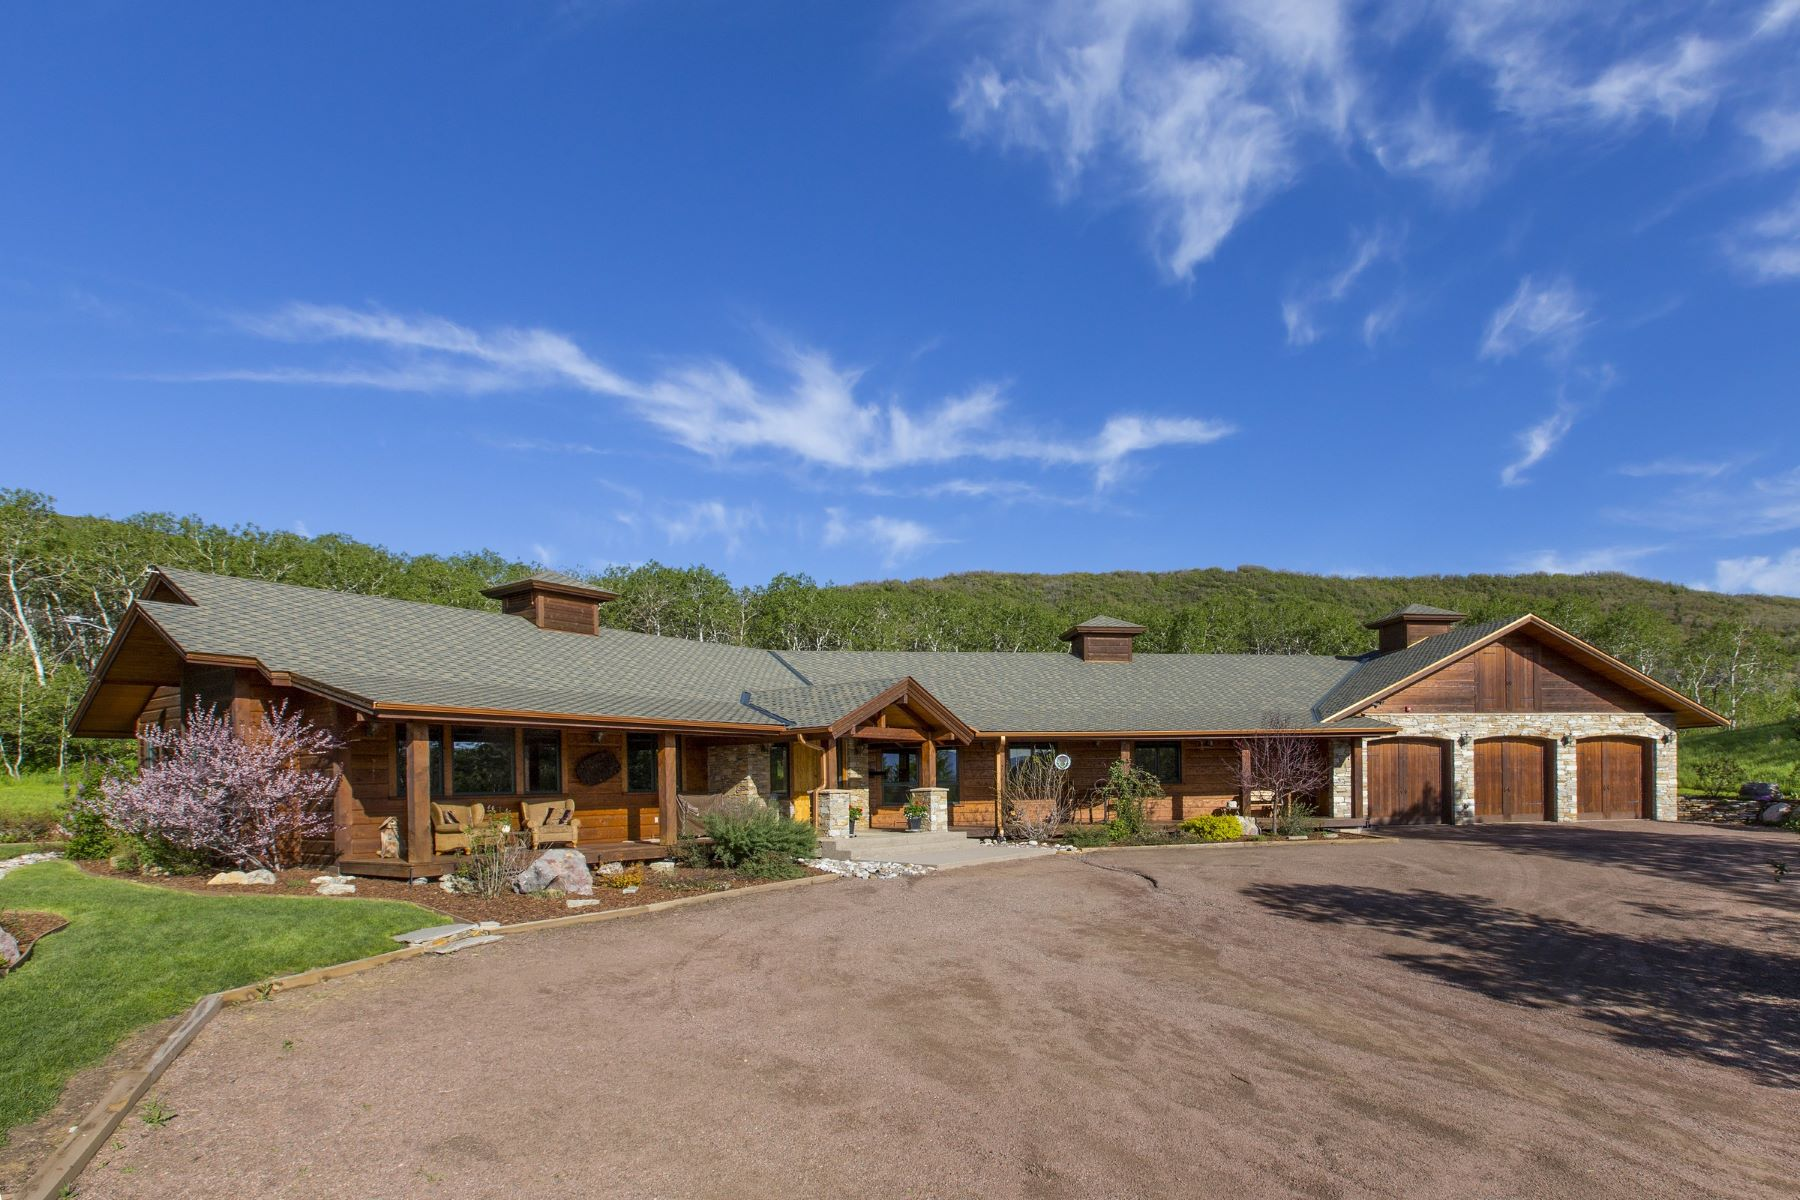 Single Family Home for Sale at Impeccable Gentleman's Ranch 26000 Deerwood Lane Steamboat Springs, Colorado 80487 United States